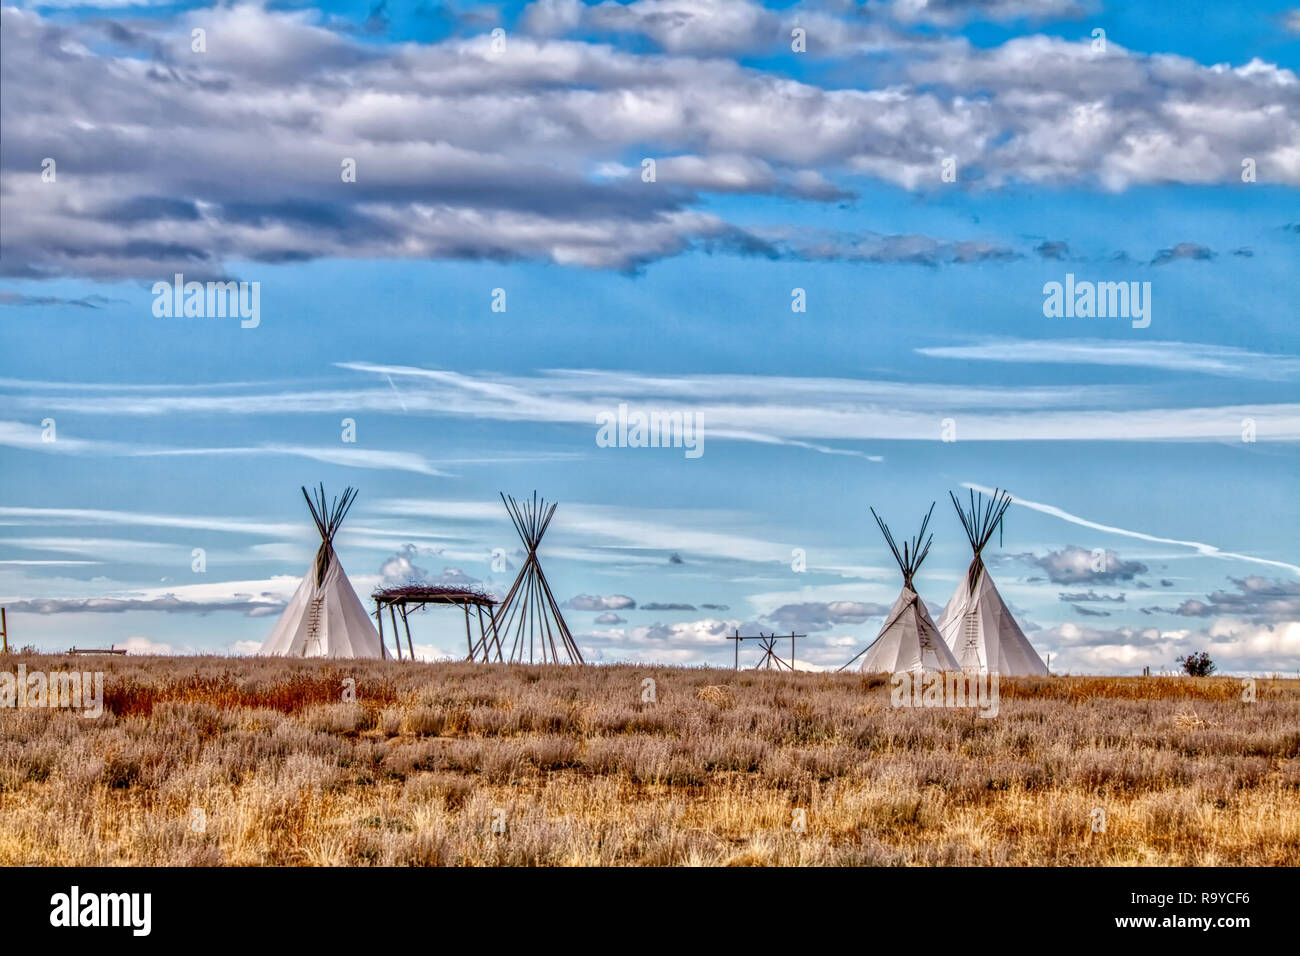 Teepees set up for educational purposes demonstrating the lifestyle of early native Americans on the plains of middle America. - Stock Image